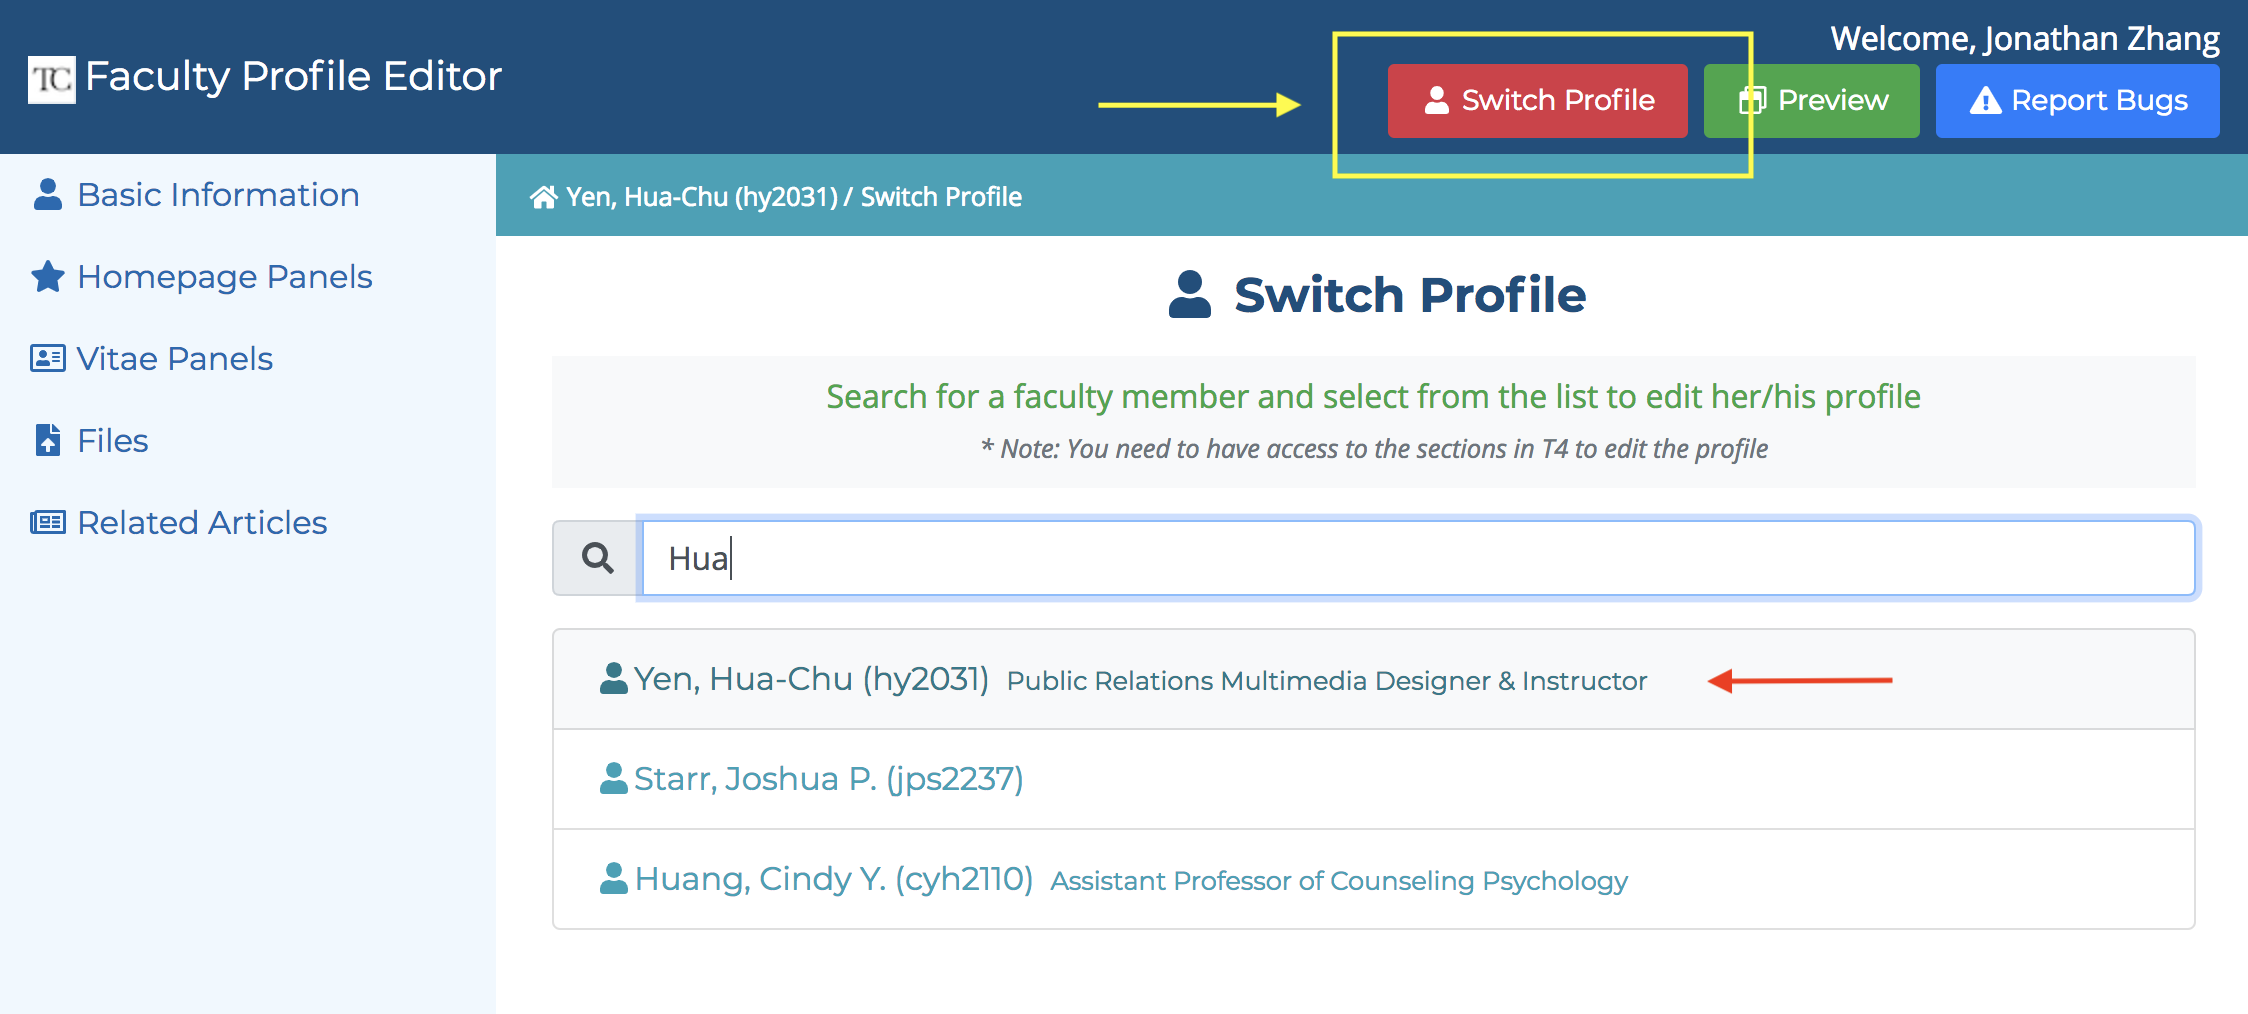 Screenshot of the Switch profile interface in the Faculty Profile Editor